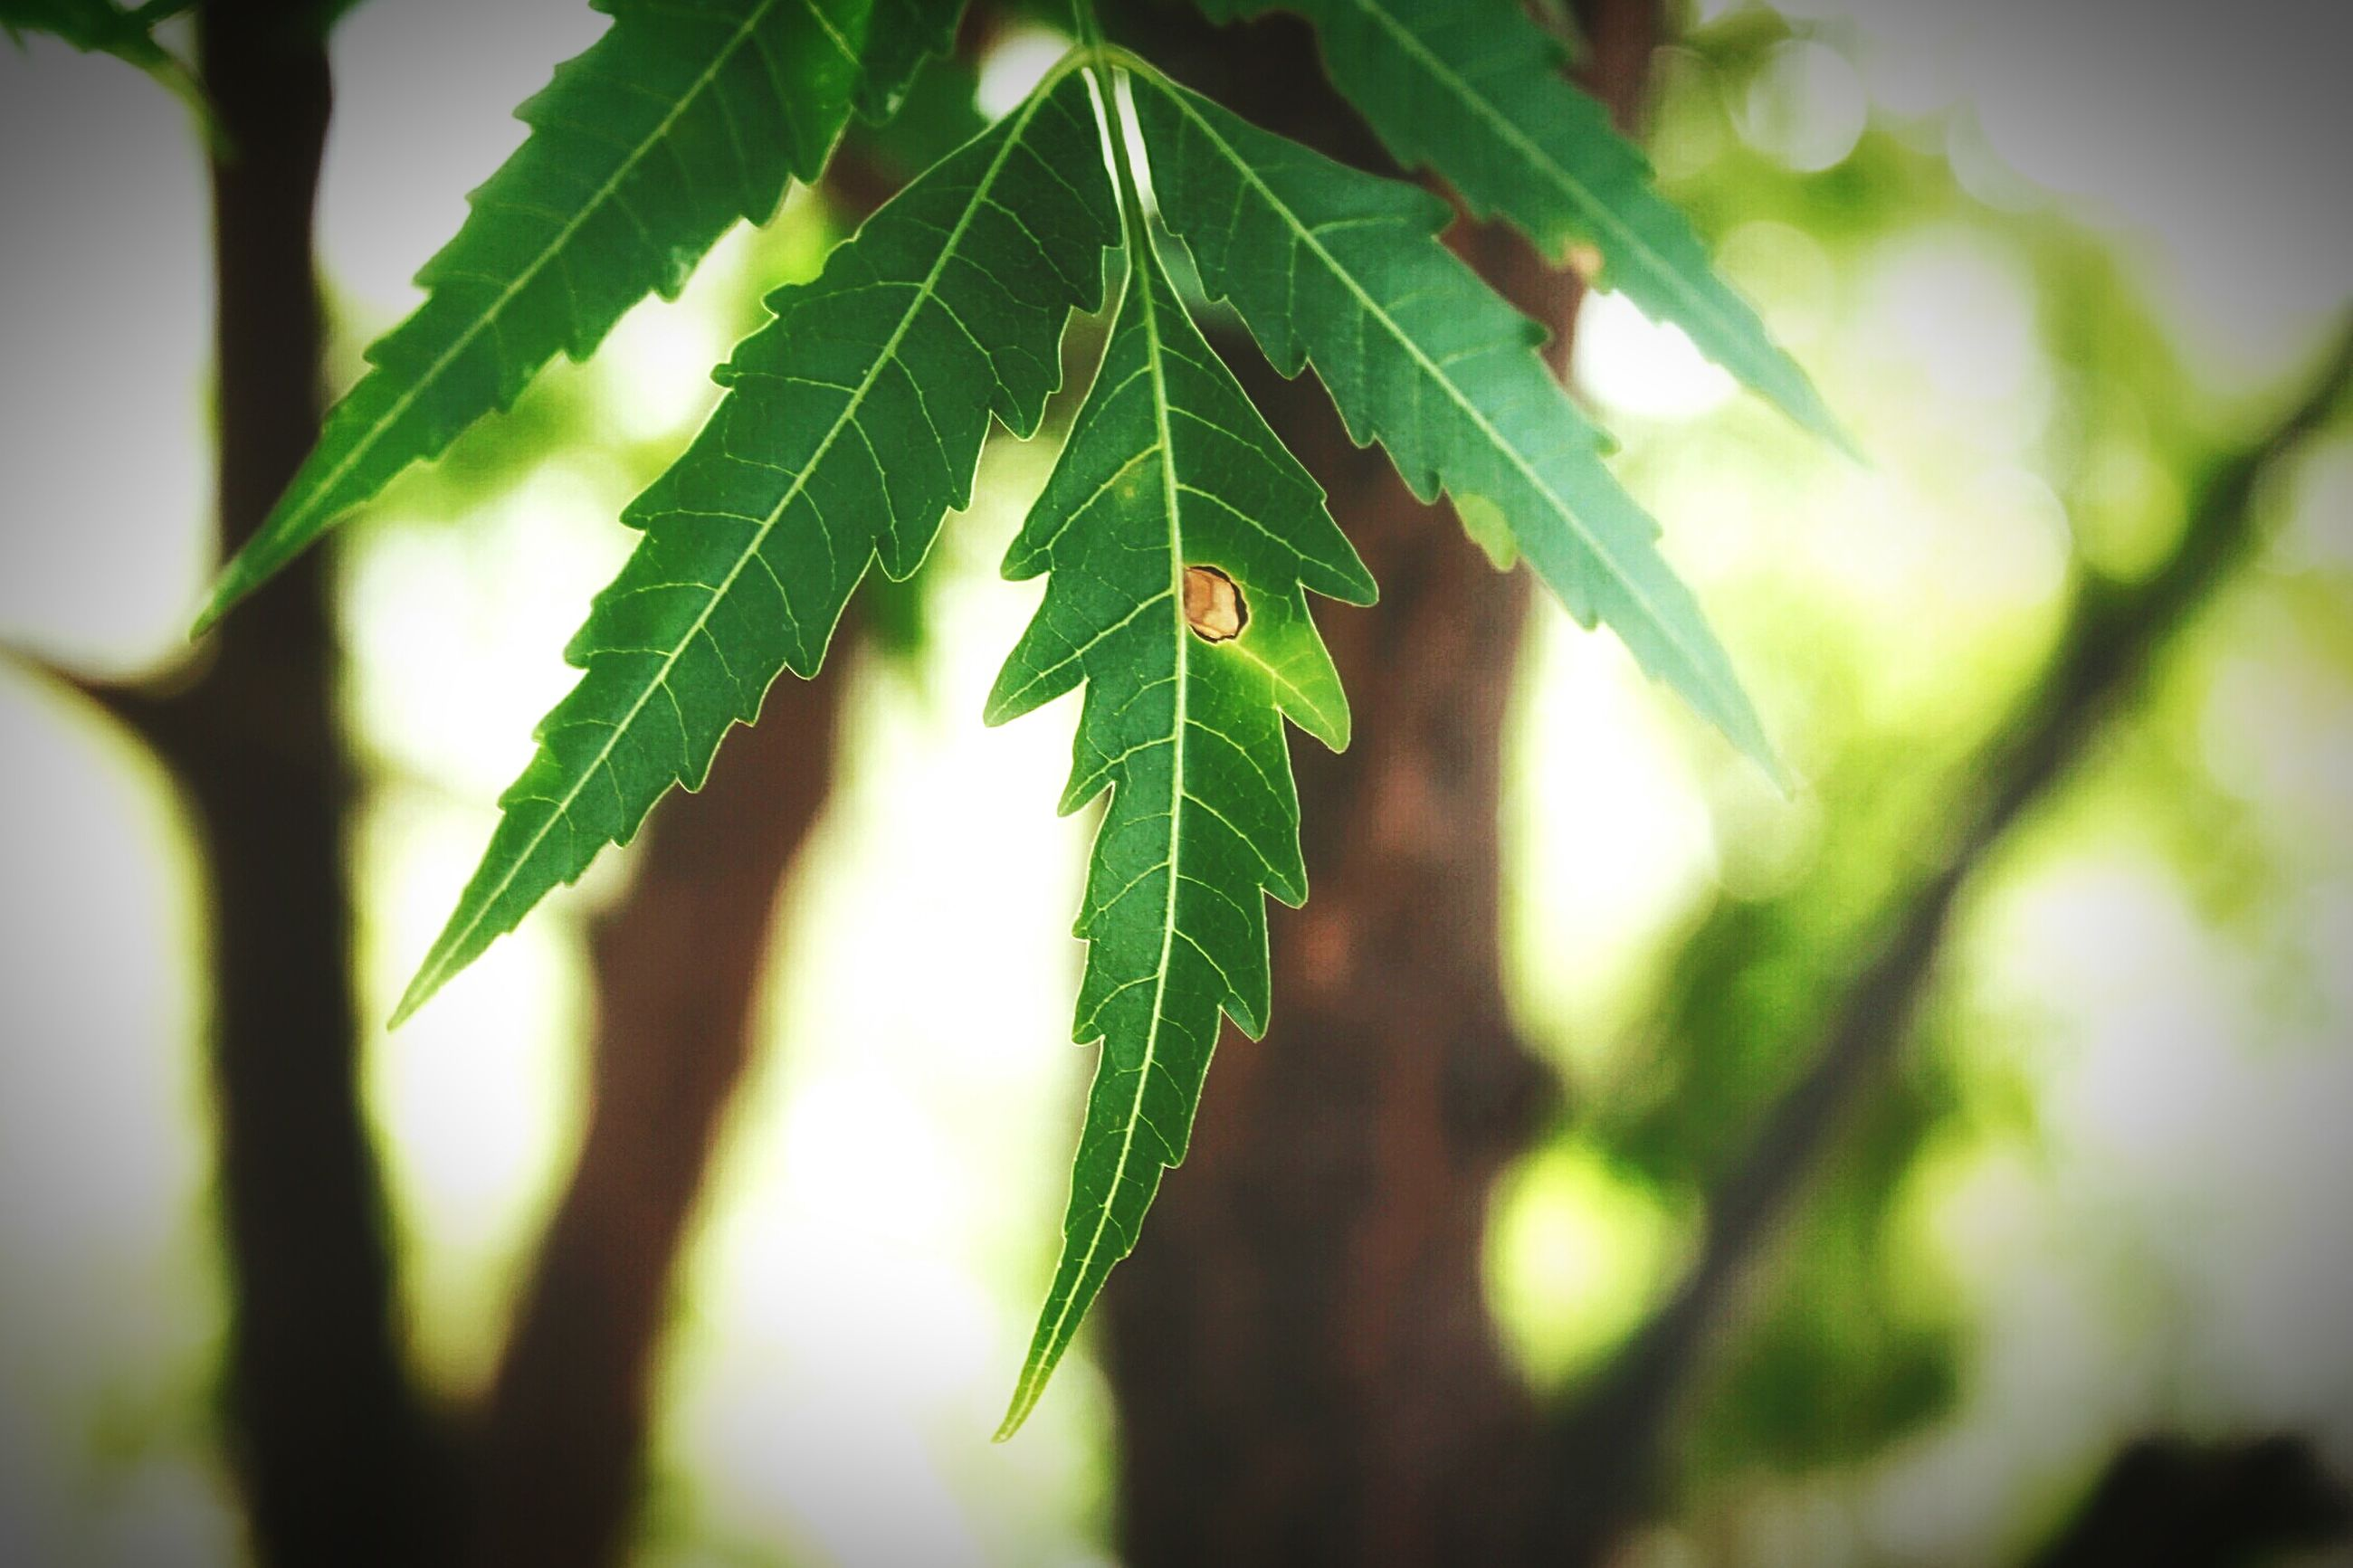 leaf, close-up, focus on foreground, growth, green color, plant, nature, selective focus, stem, twig, beauty in nature, freshness, day, outdoors, no people, green, tranquility, sunlight, branch, growing